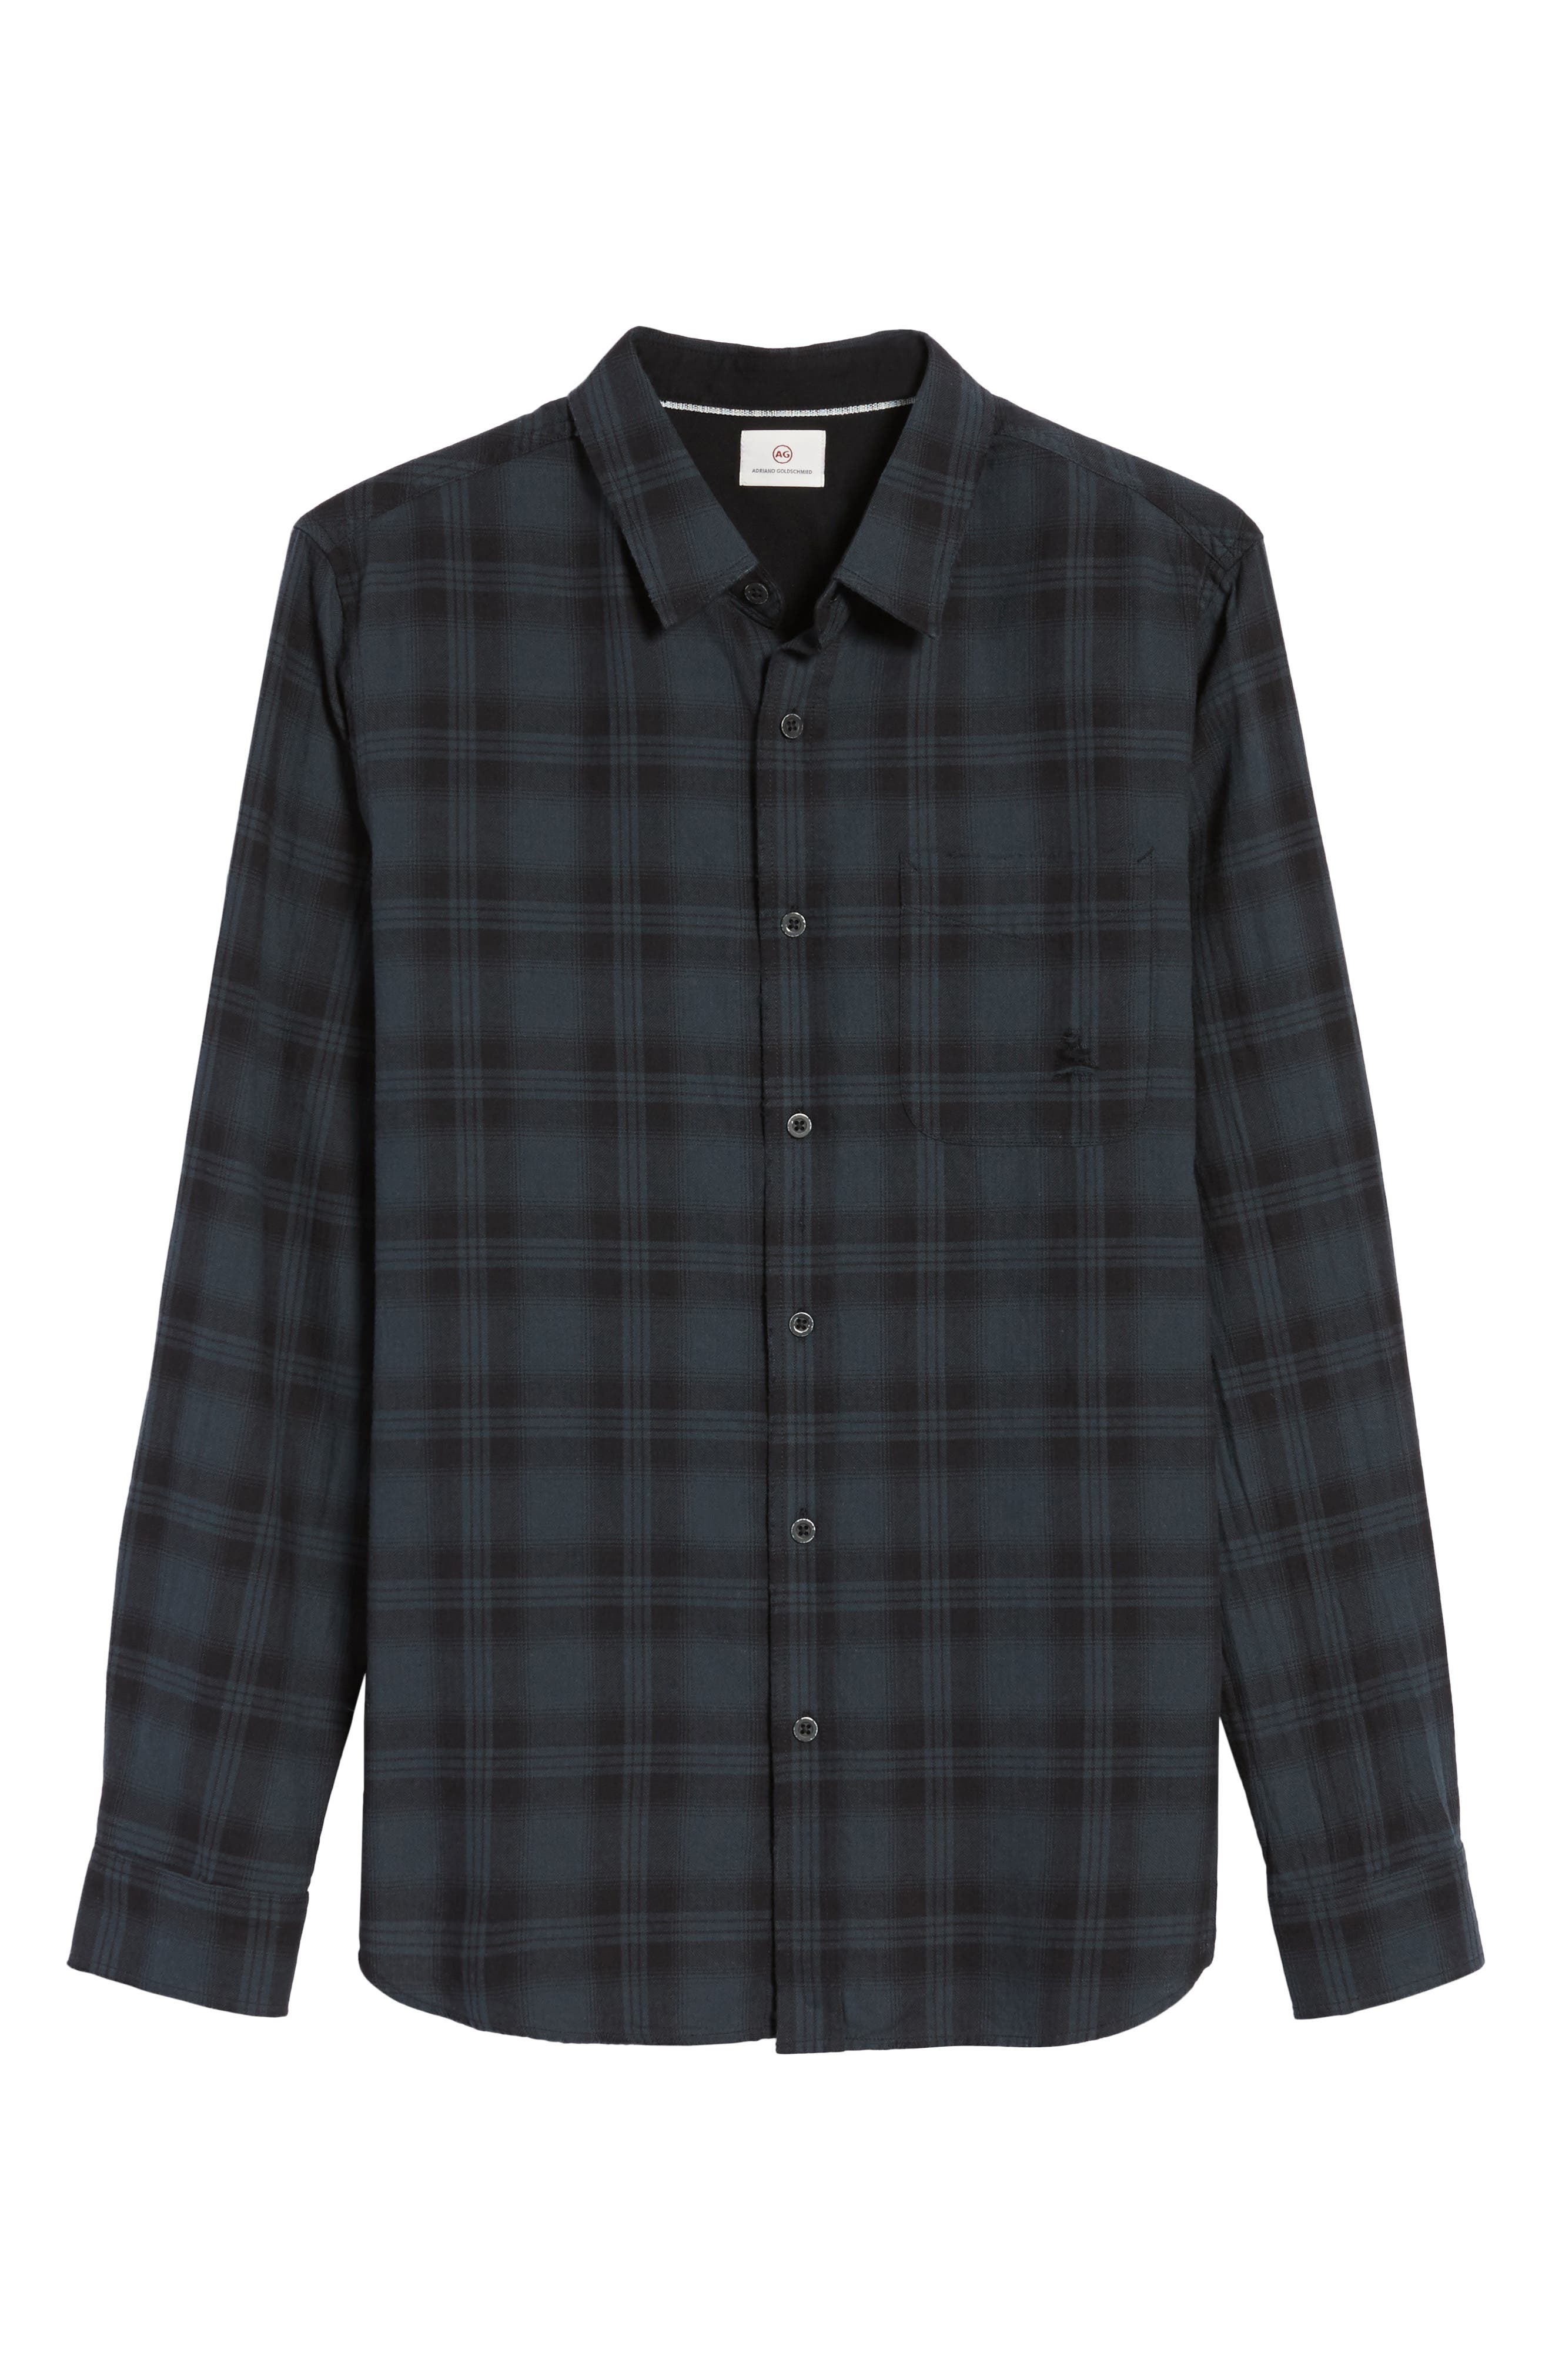 Colton Slim Fit Plaid Sport Shirt,                             Alternate thumbnail 6, color,                             487